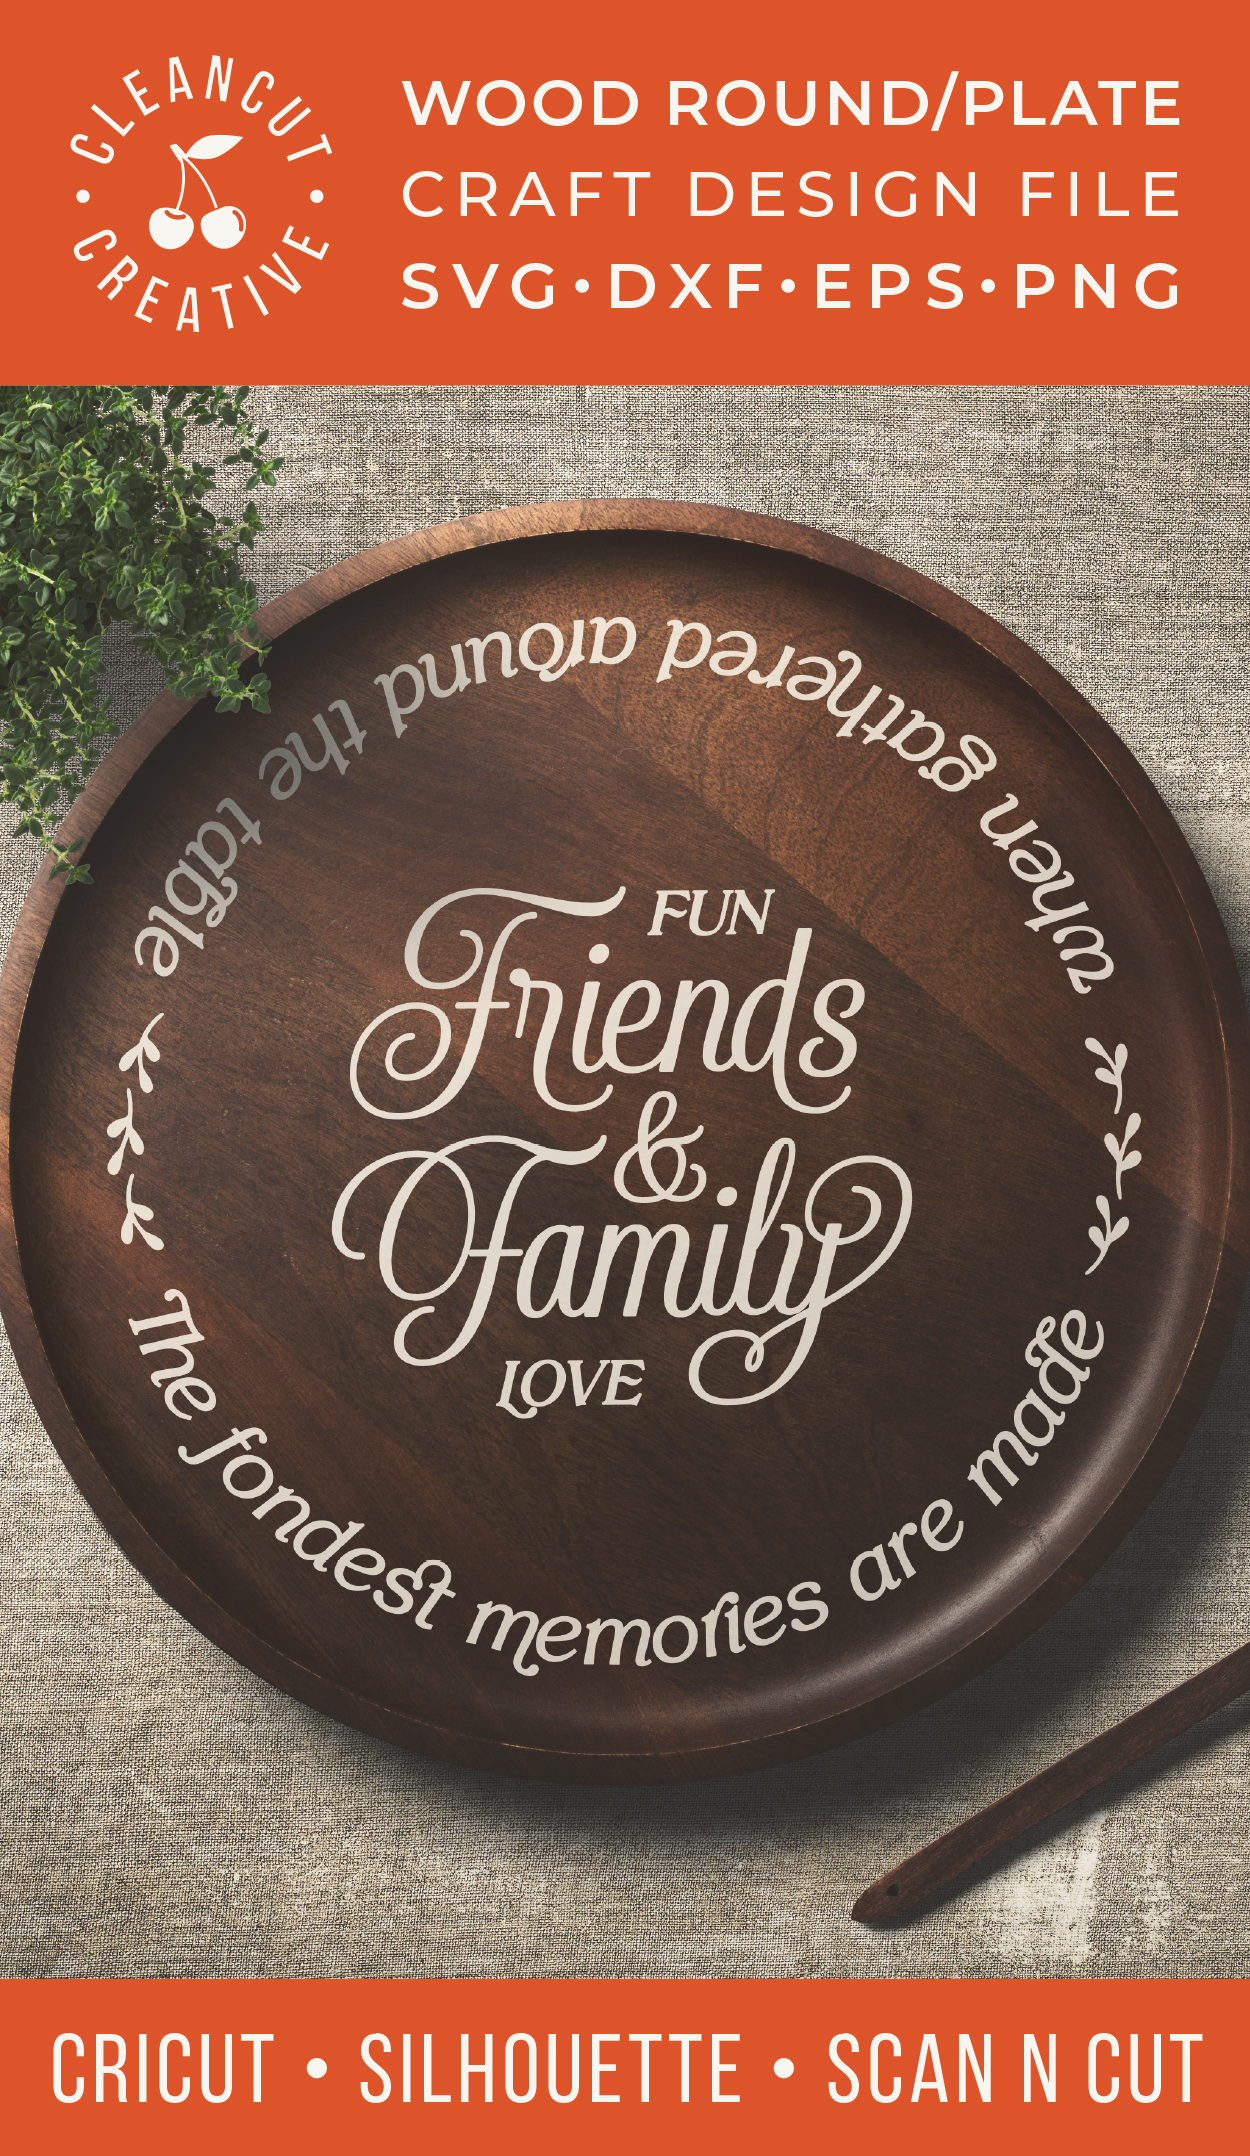 Friends & Family Fondest Memories Gathered Table - round svg example image 4